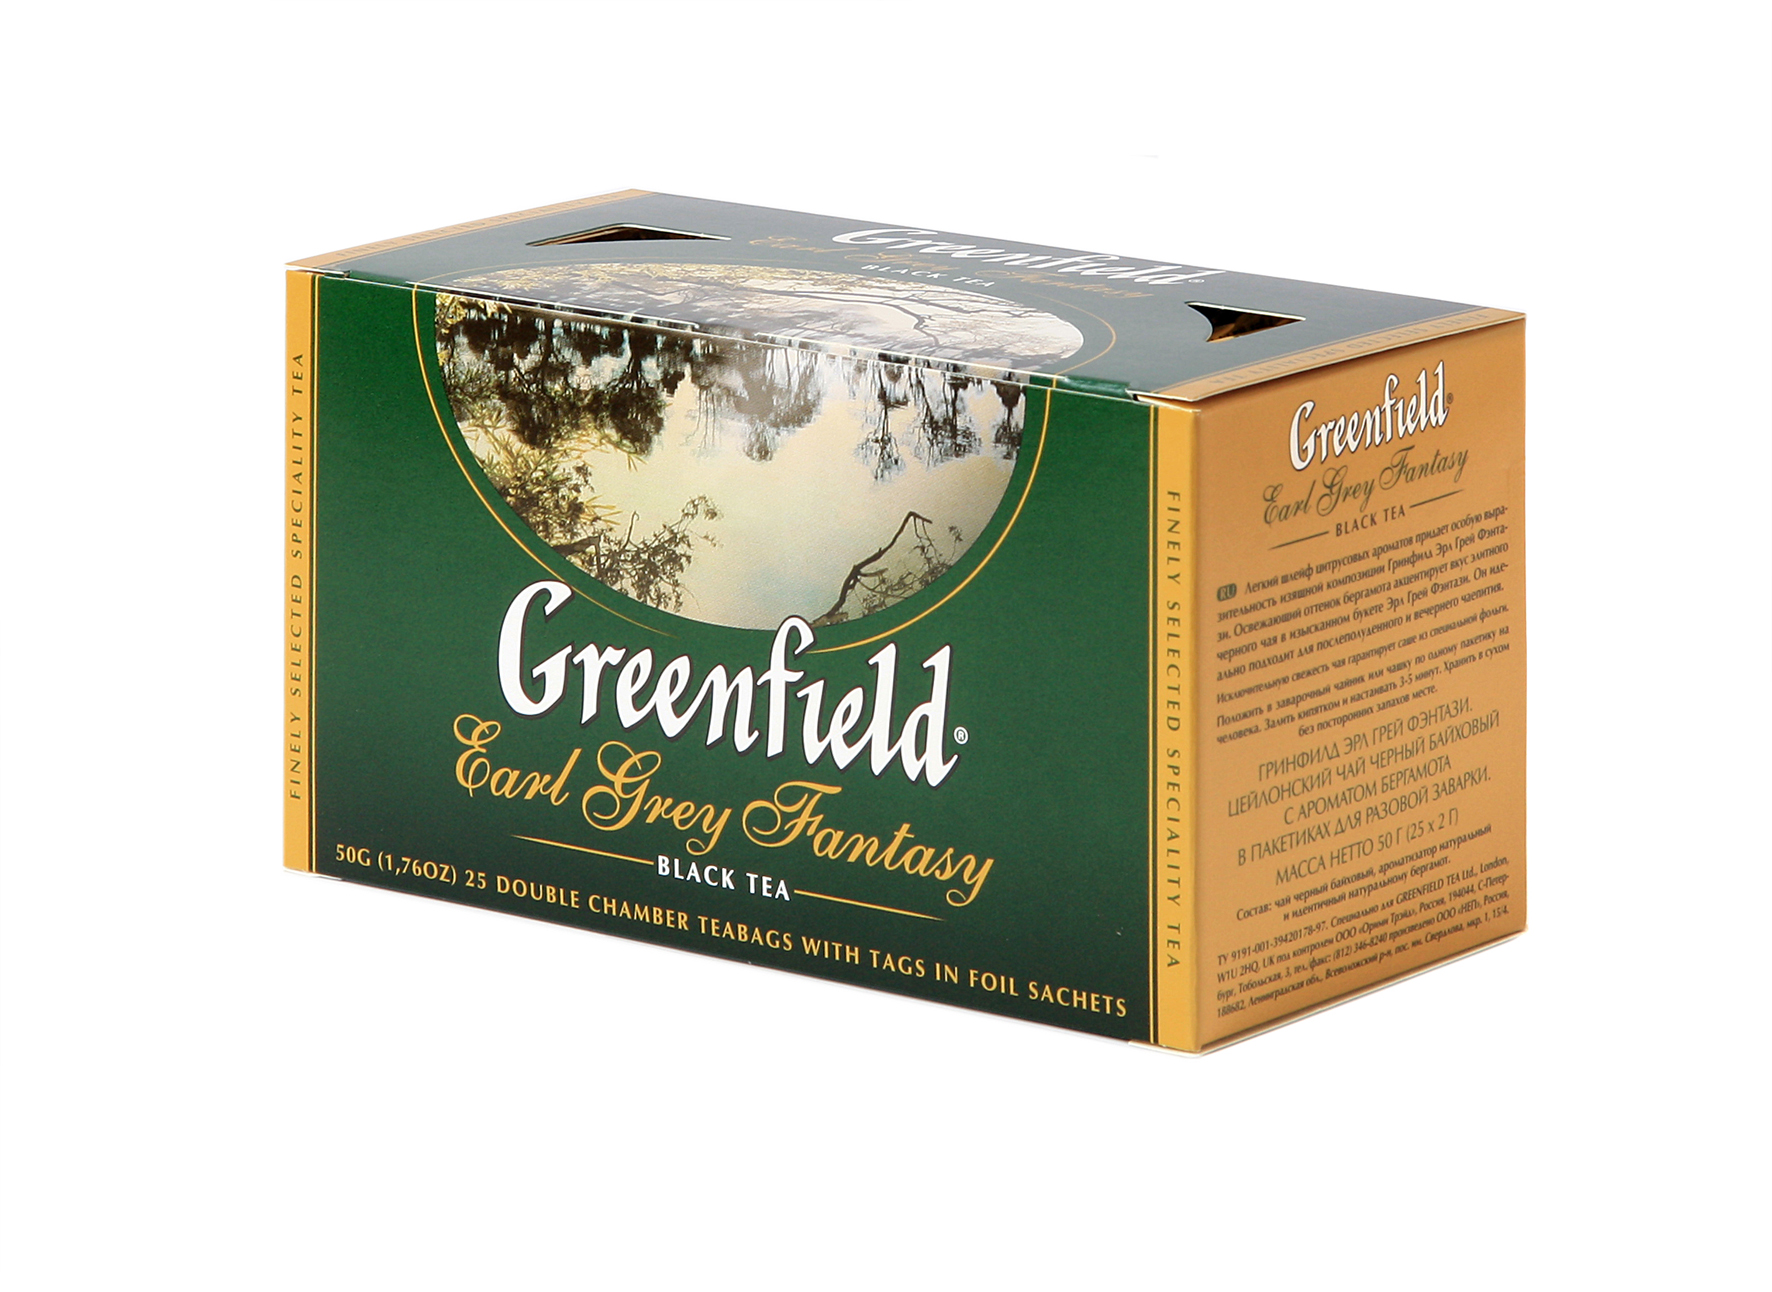 Earl Grey Fantasy Greenfield